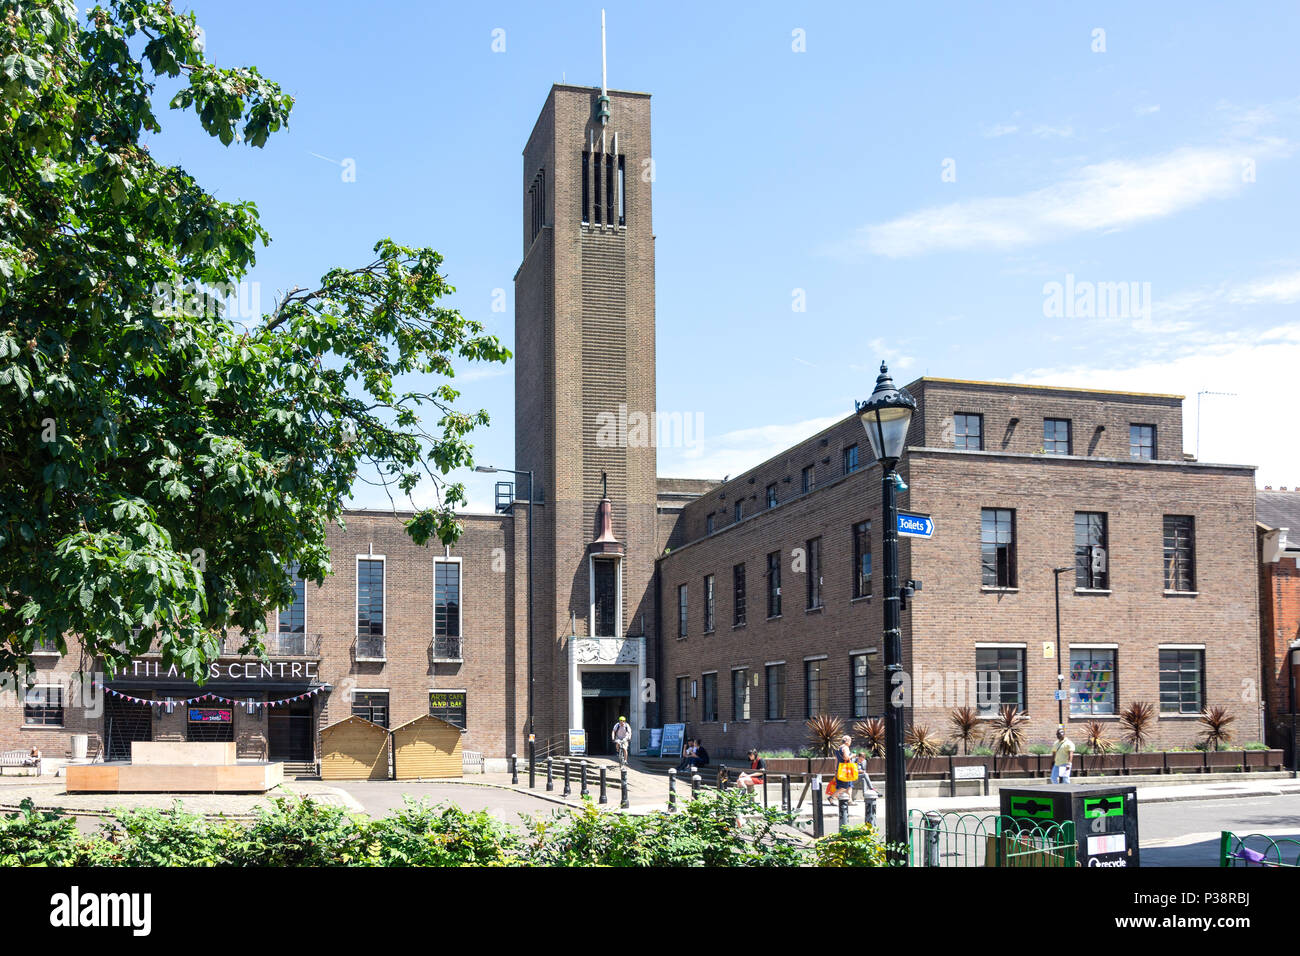 Hornsey Town Hall (edificio de apartamentos), el Broadway, Crouch End, London Borough of Haringey, Greater London, England, Reino Unido Imagen De Stock